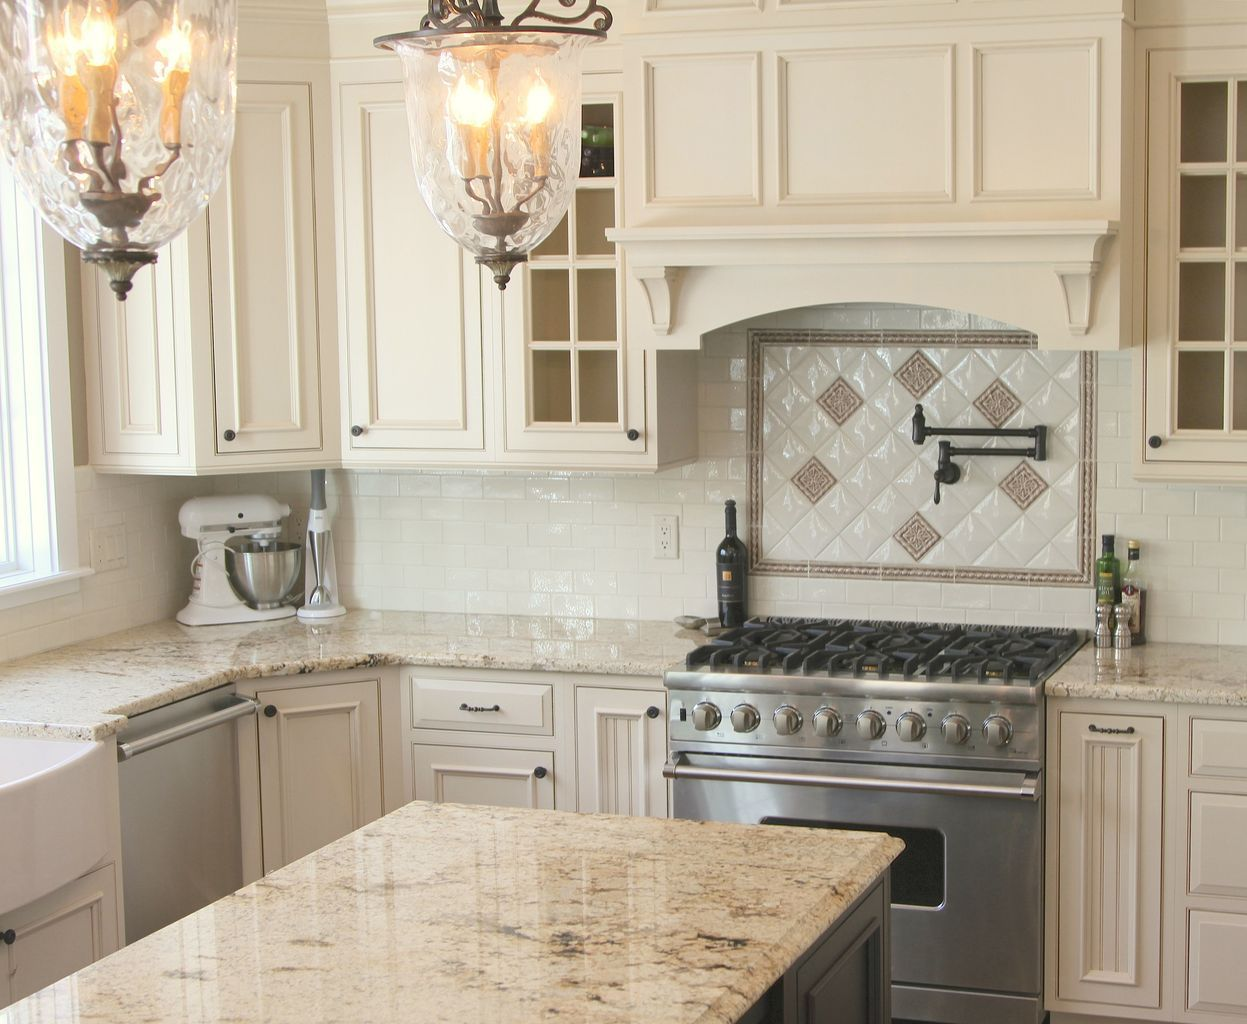 Smokey Taupe 2 Top Taupe Paints For Your Kitchen Cabinets Beige Kitchen Beautiful Kitchen Cabinets New Kitchen Cabinets